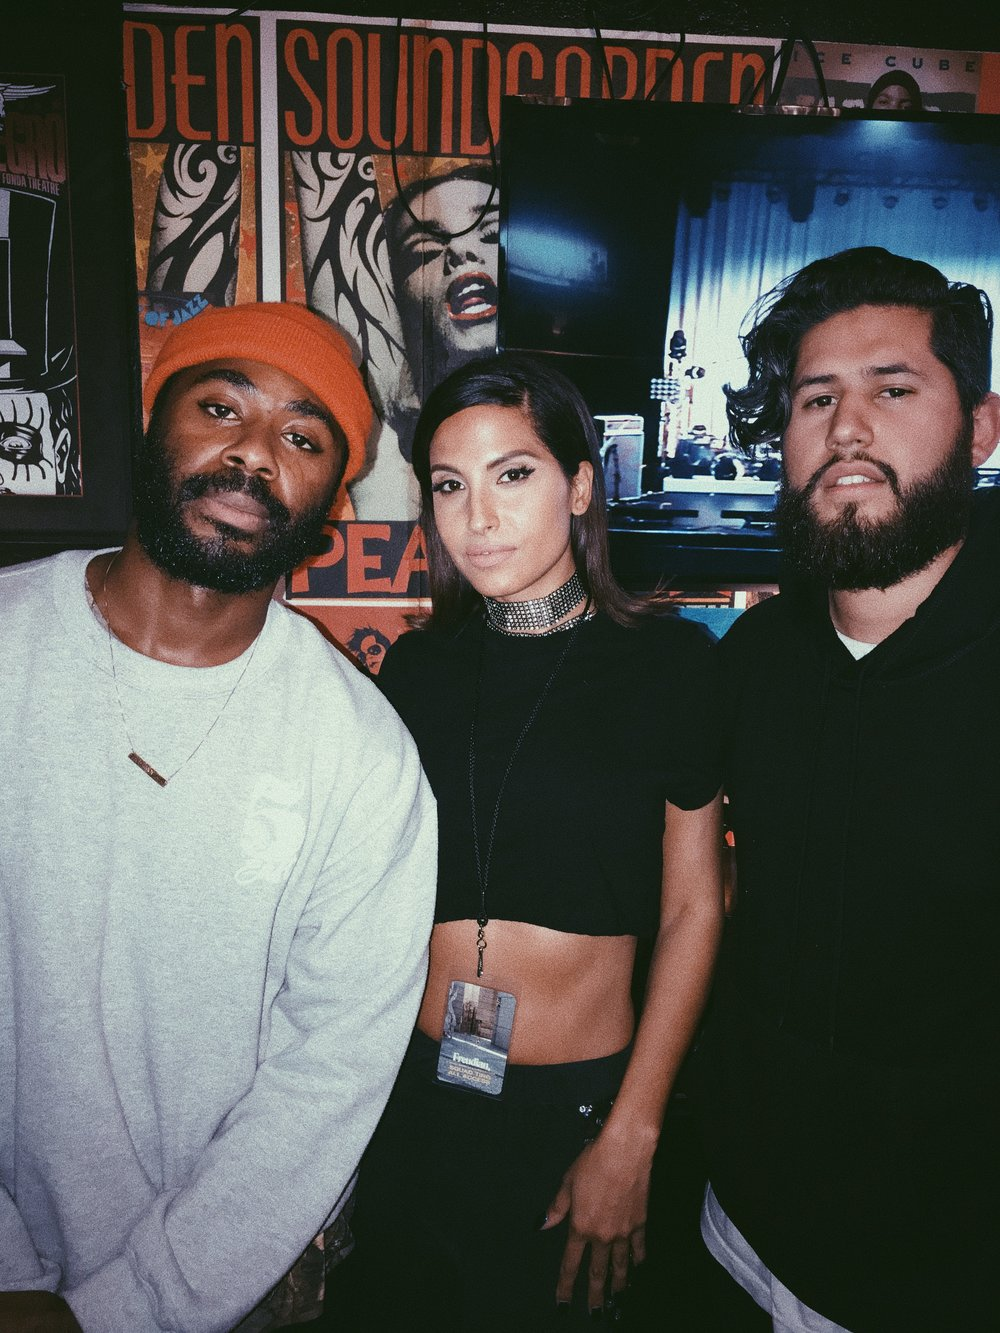 Marcus & I backstage with Snoh after opening up for Daniel Caesar during The Freudian Tour.